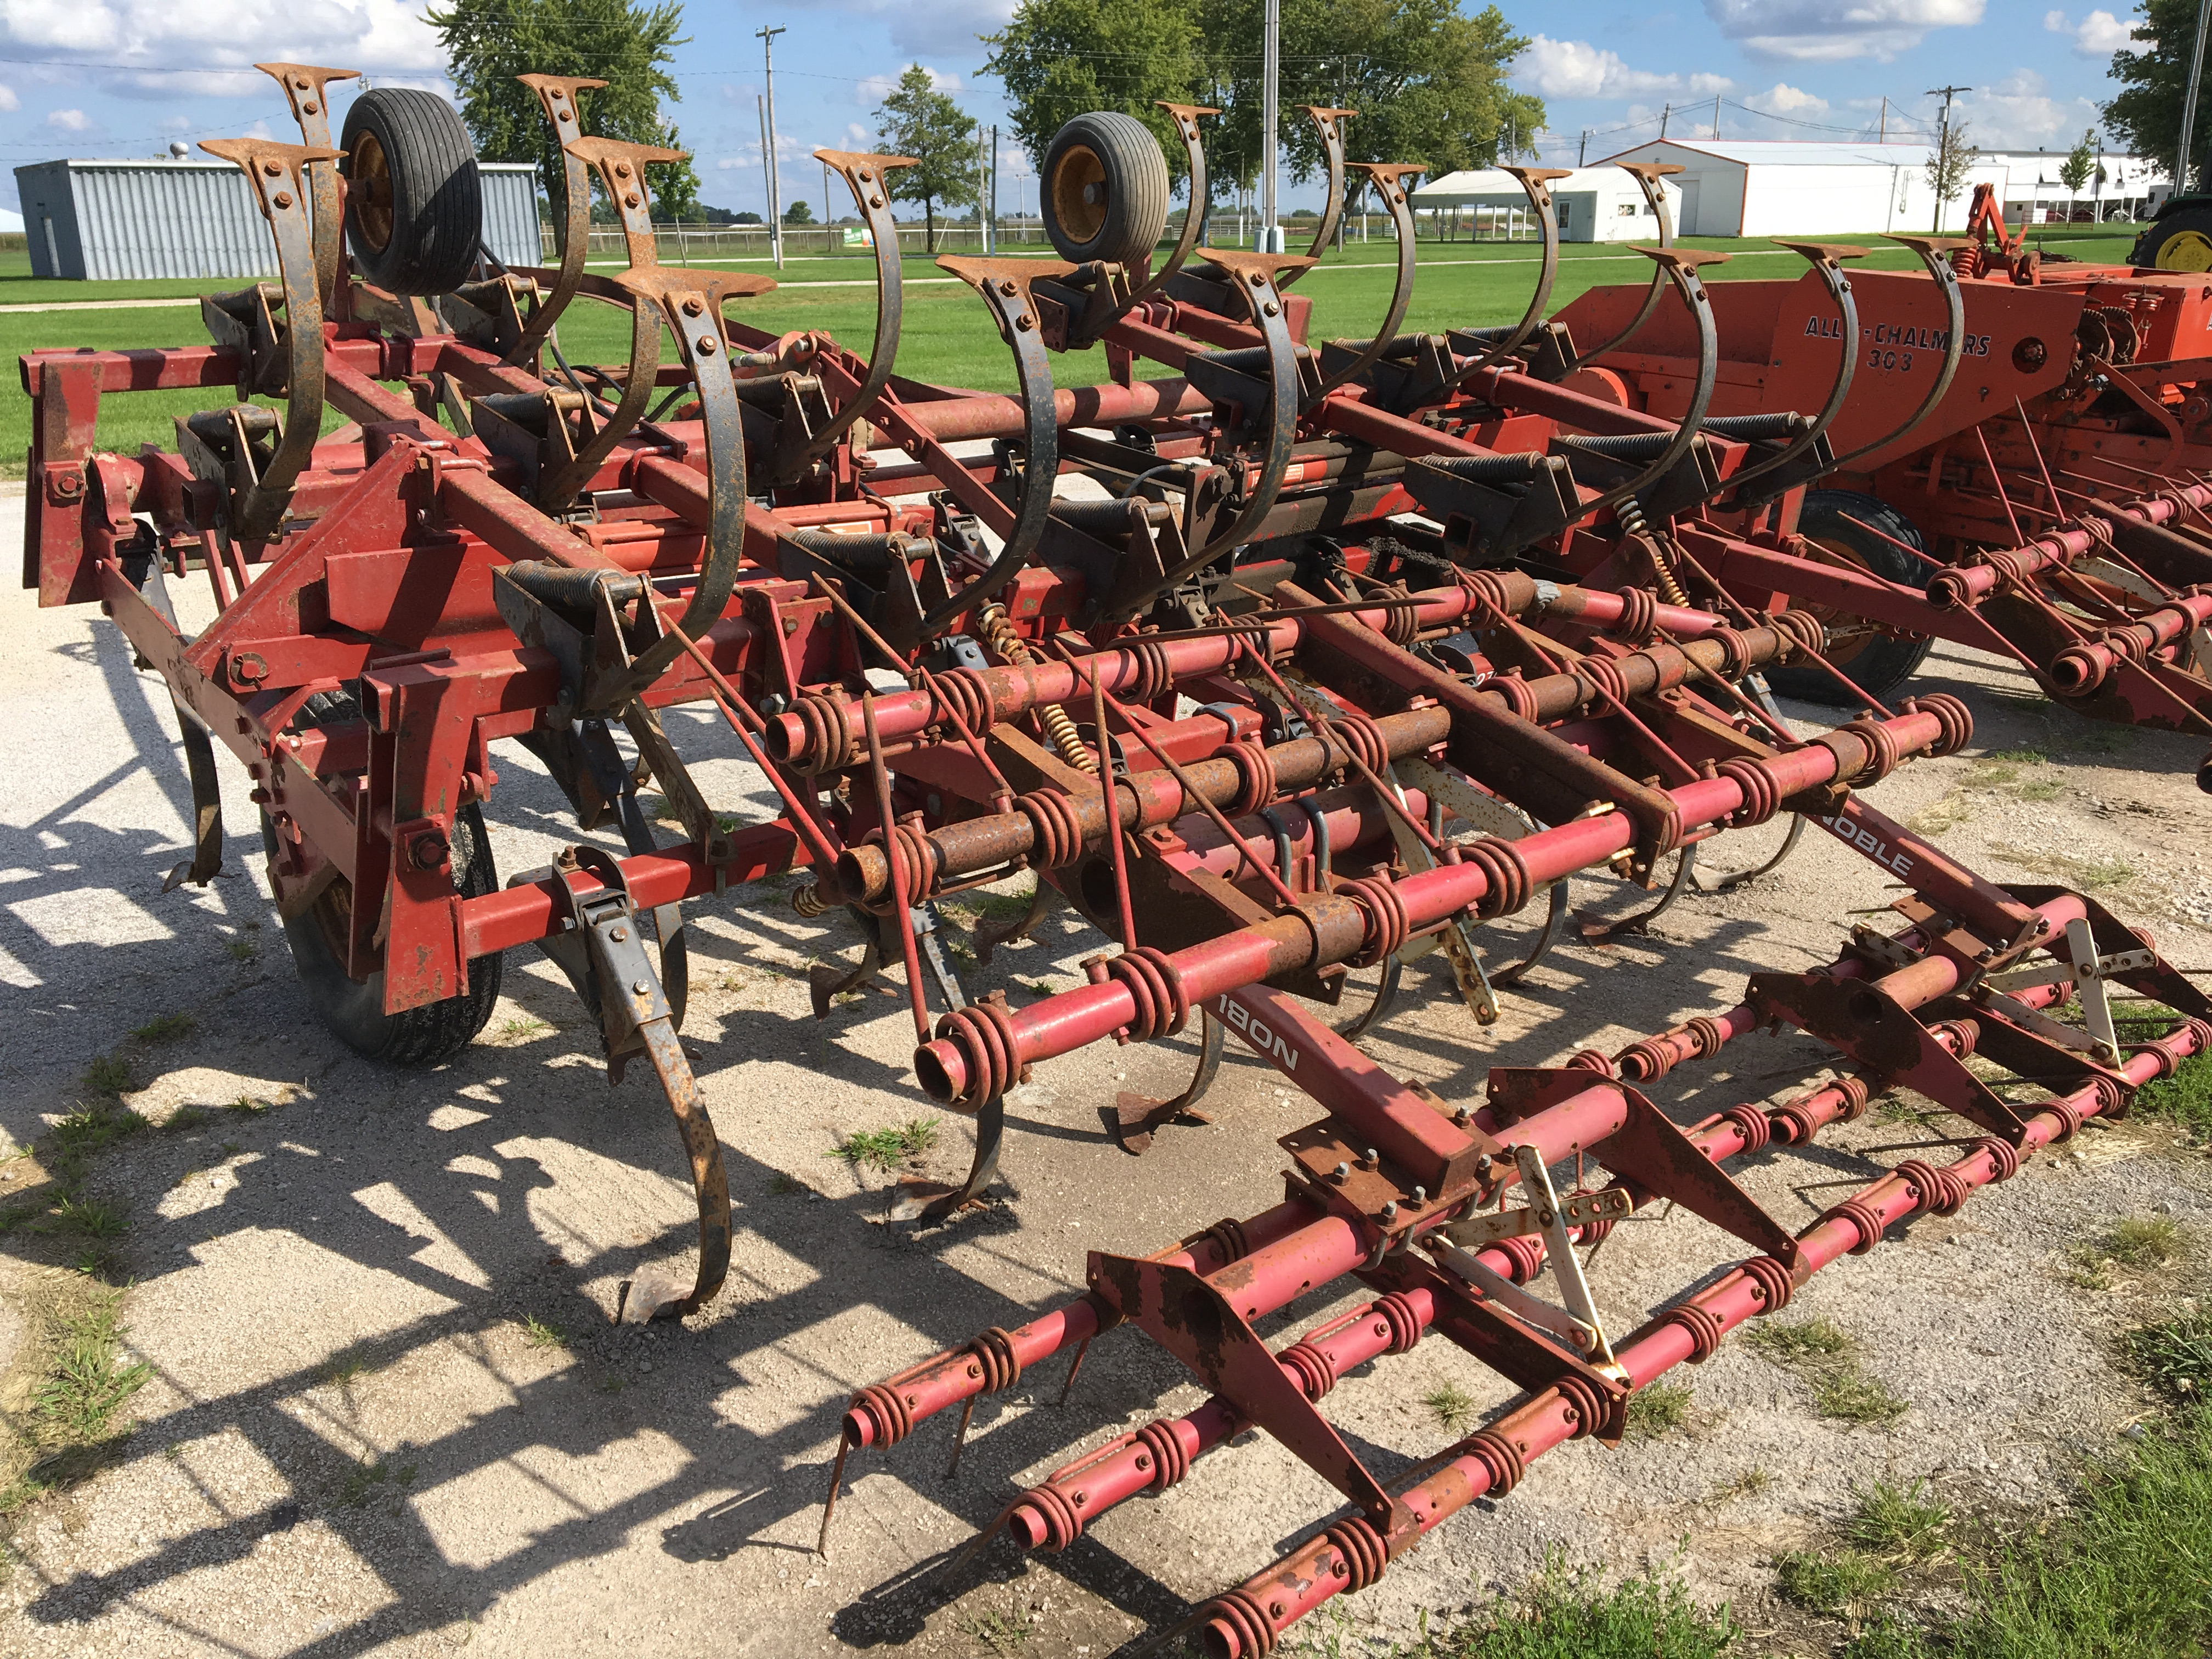 Lot 17 - Kewanee 270 Super Shank 20' field cultivator with 3 bar coil tine harrow.